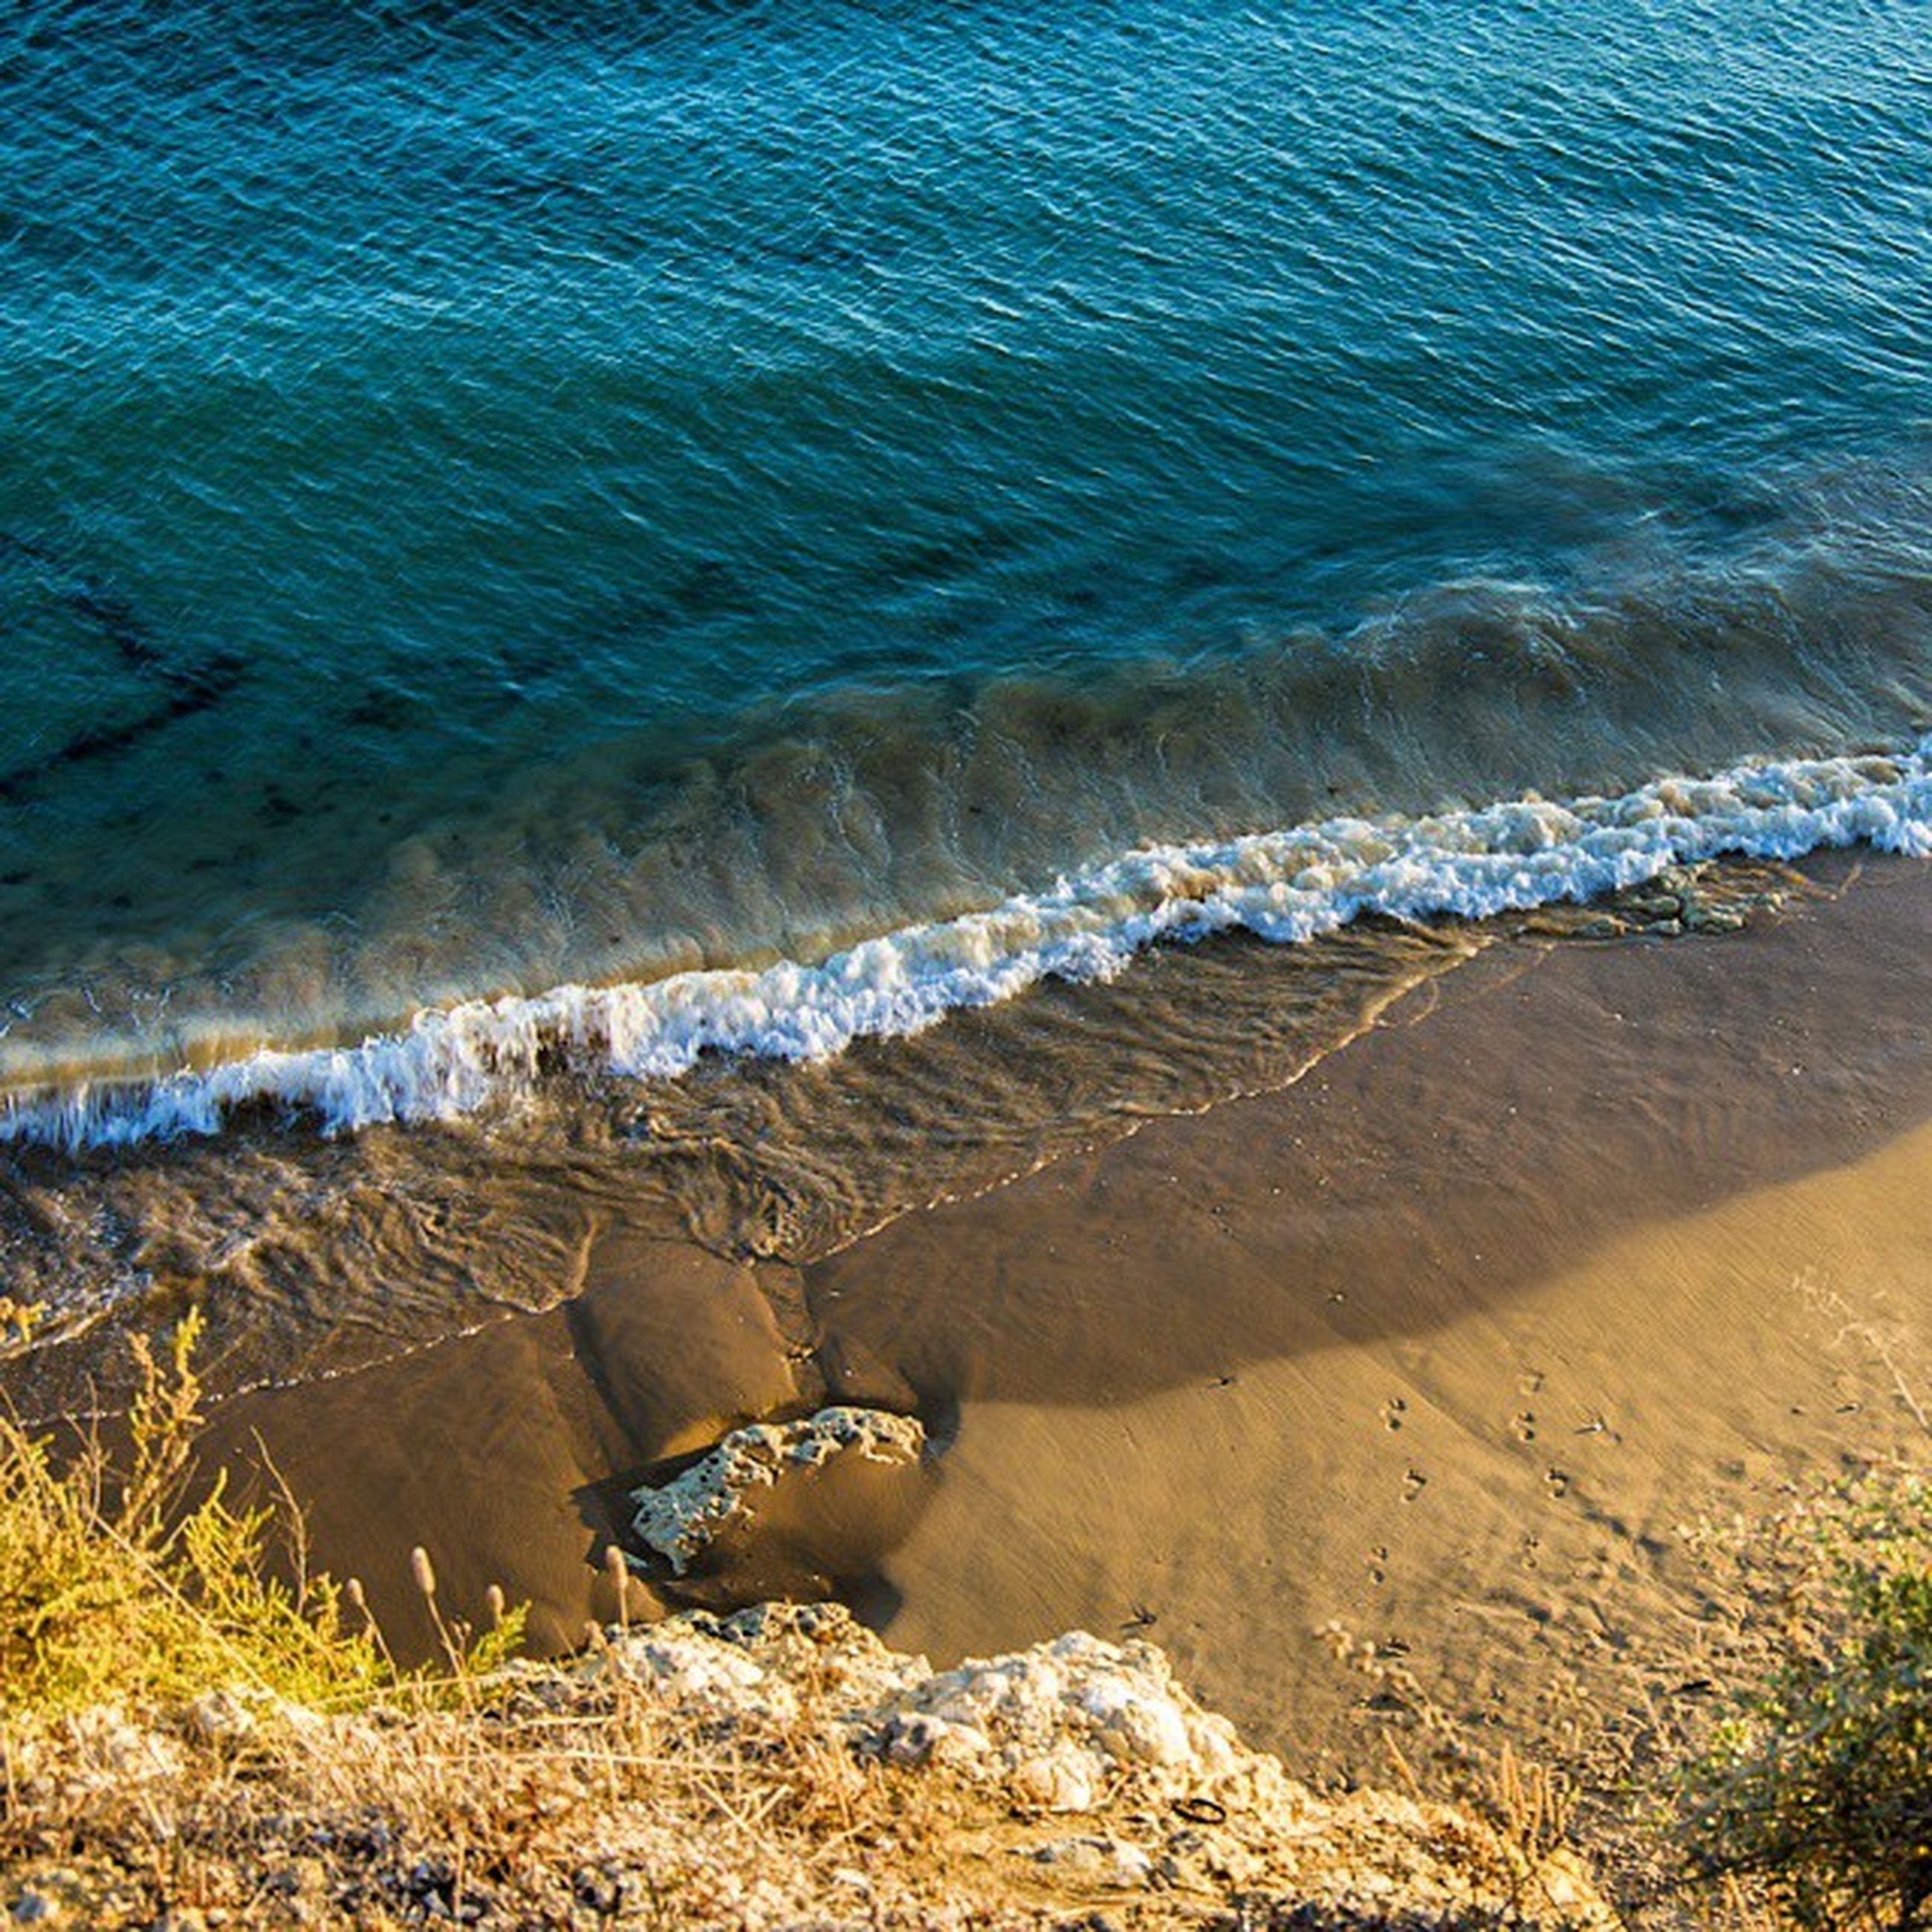 water, beach, sea, sand, shore, high angle view, tranquility, nature, blue, tranquil scene, day, beauty in nature, outdoors, sunlight, relaxation, coastline, scenics, animal themes, wave, horizon over water